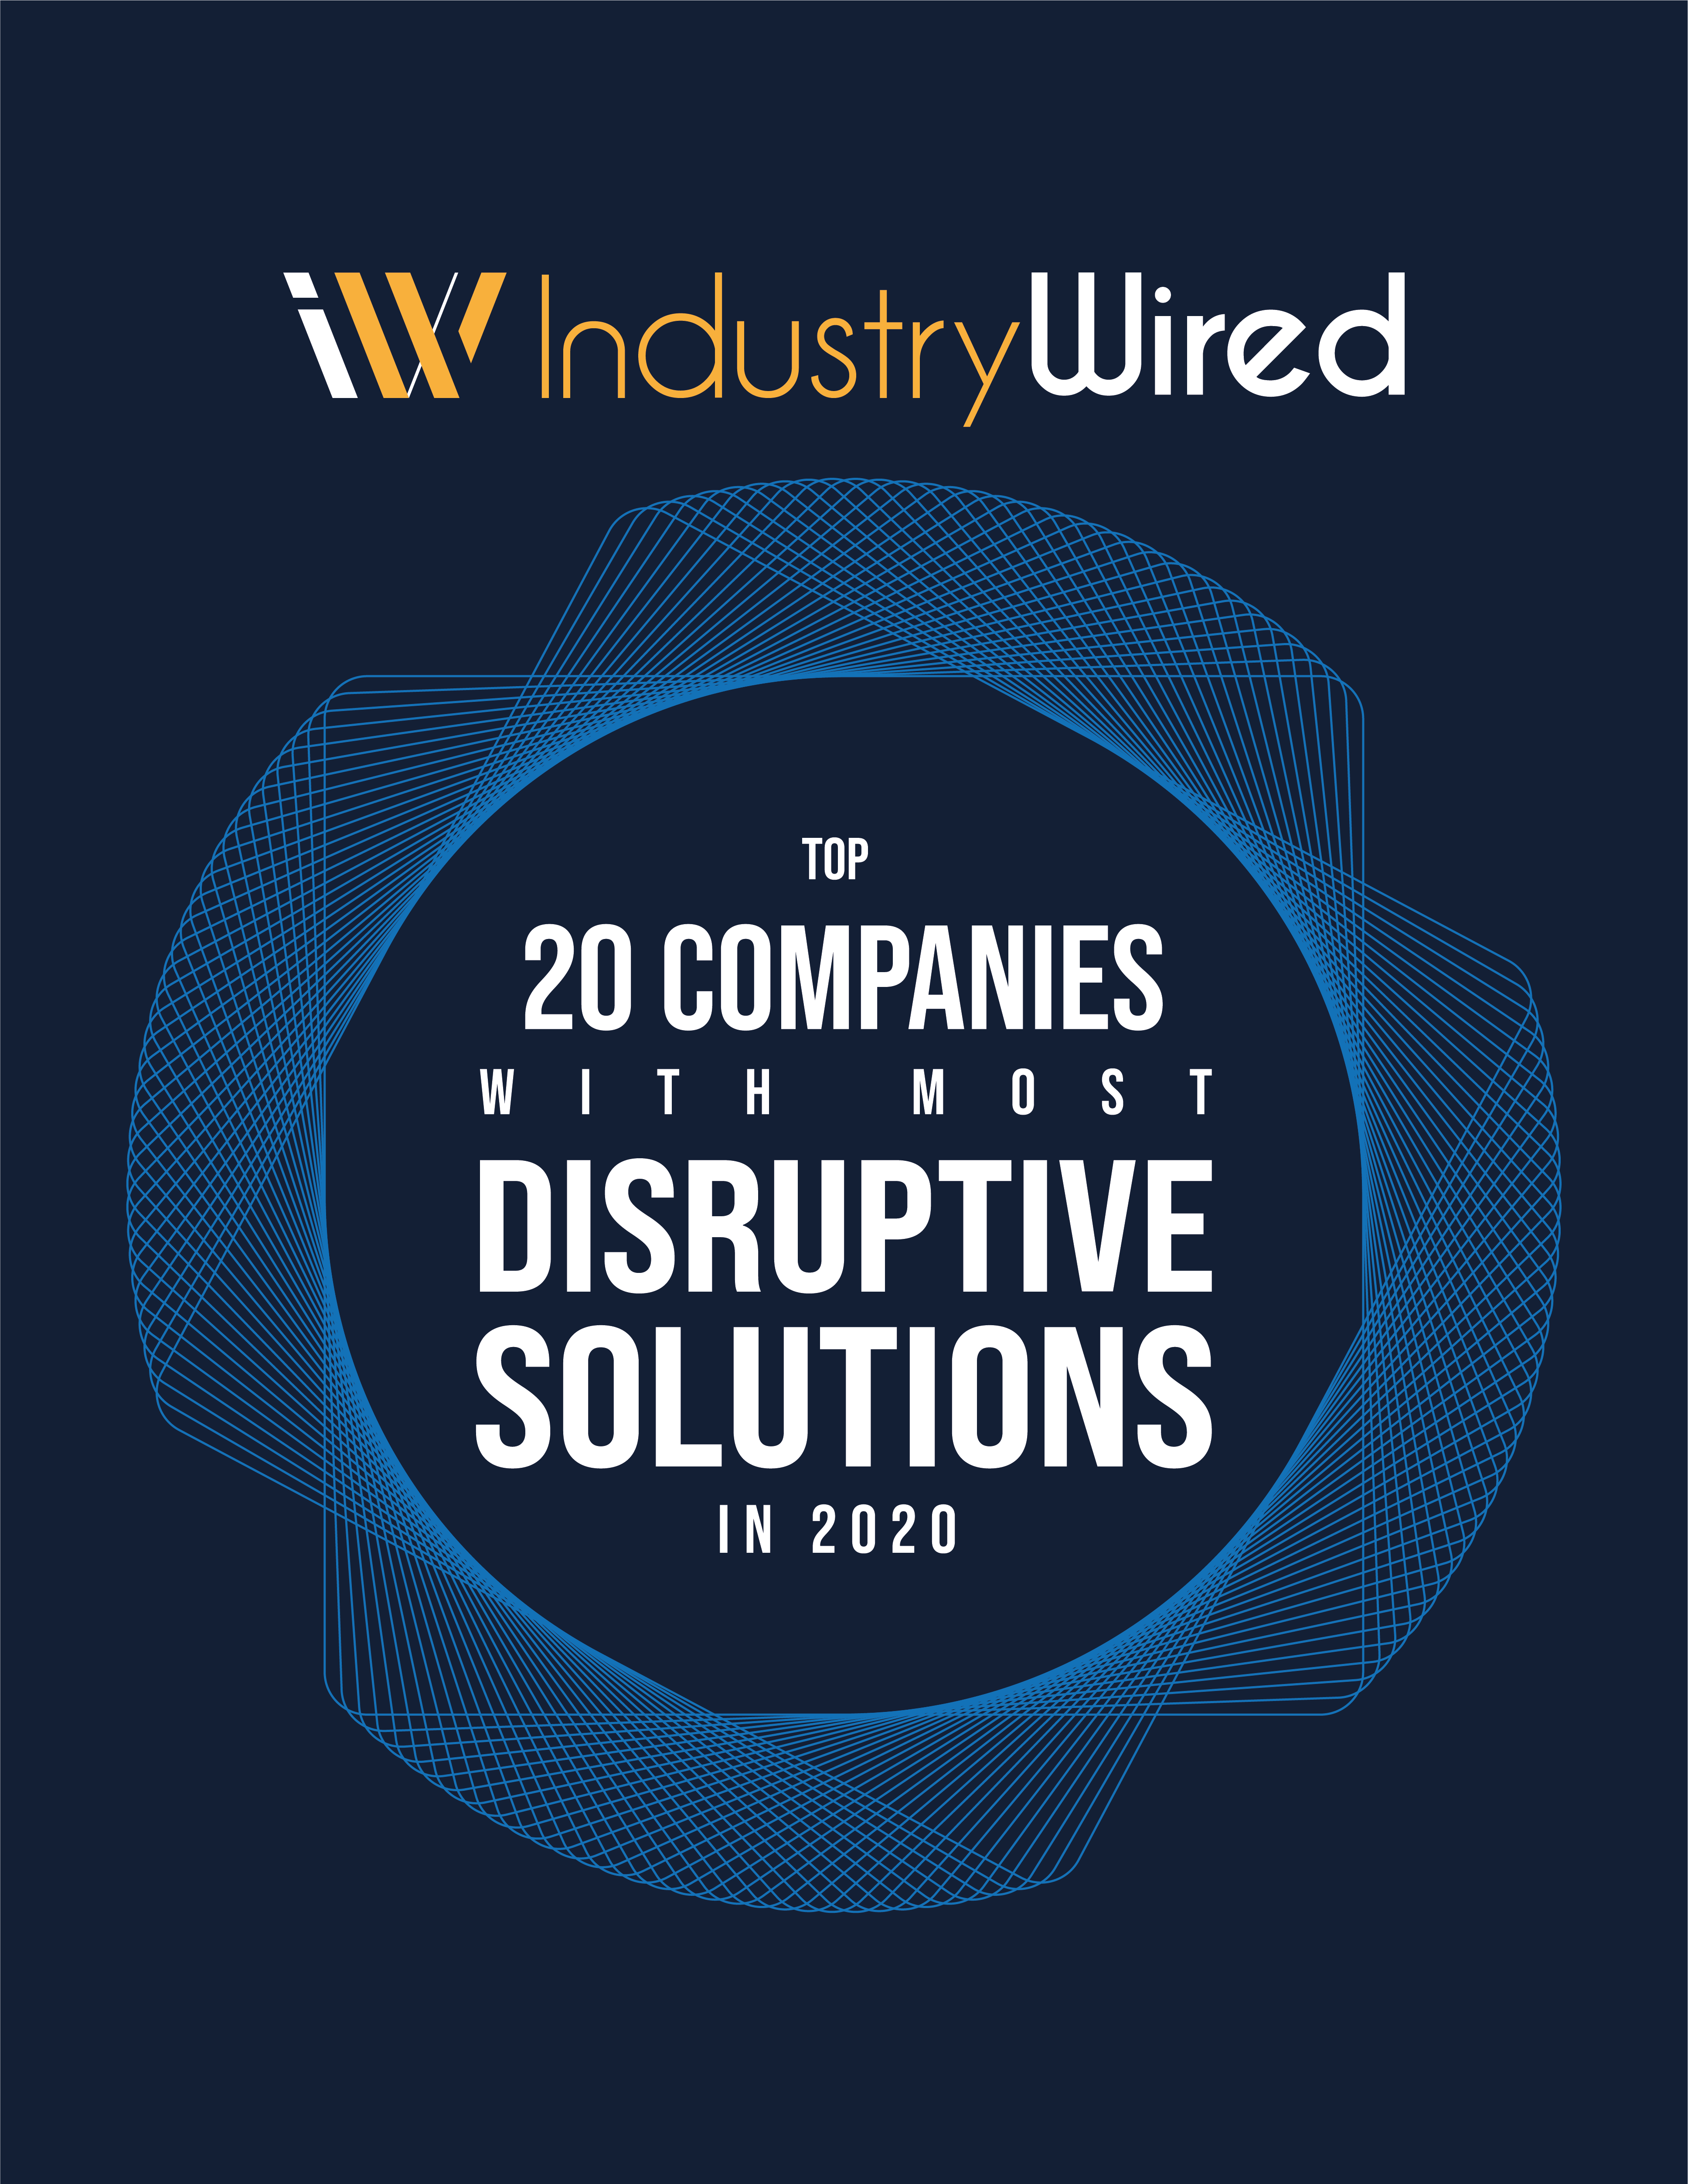 Top 20 Companies with most Disruptive Solutions in 2020